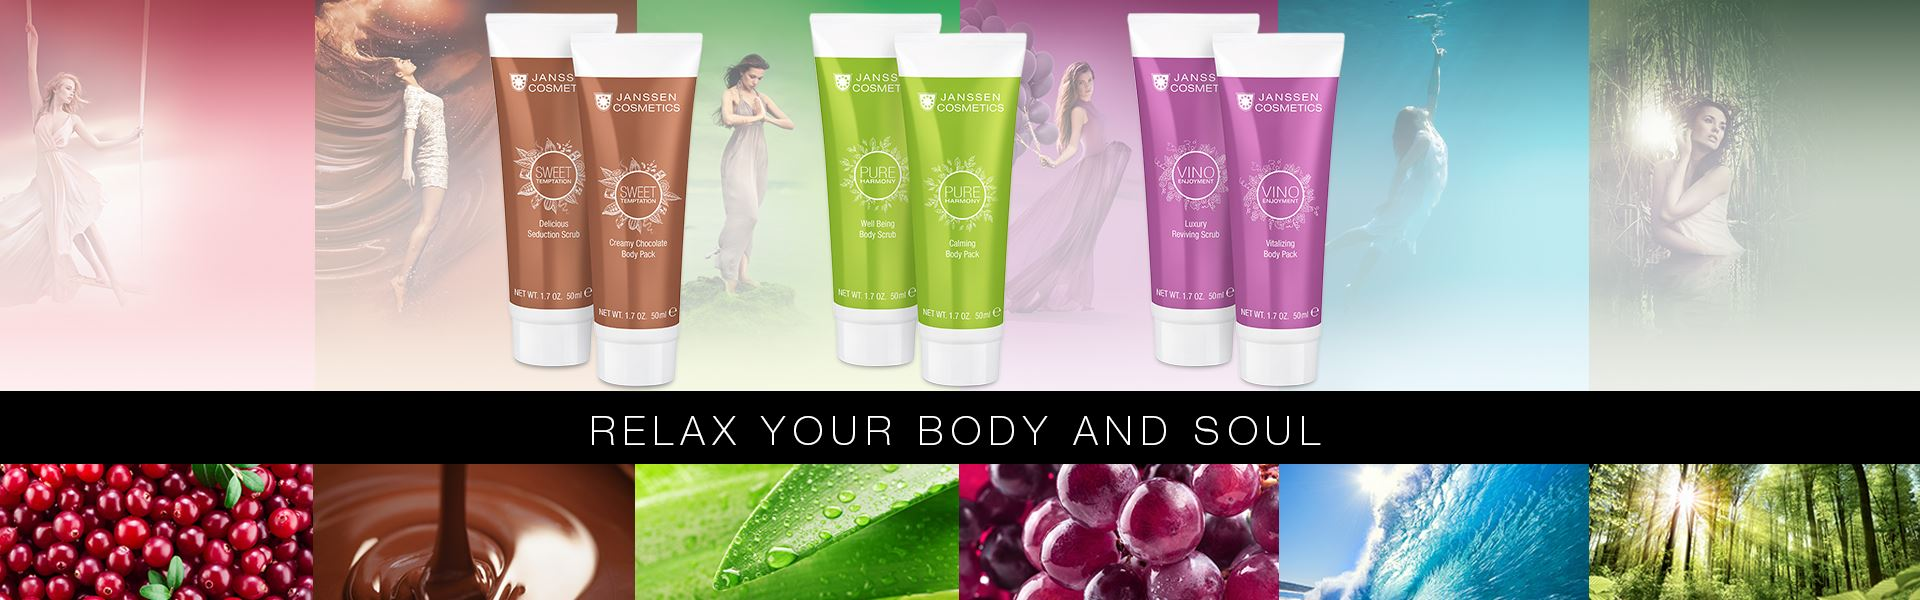 Relax your Body and Soul - Janssen Cosmetics Wellness Minis